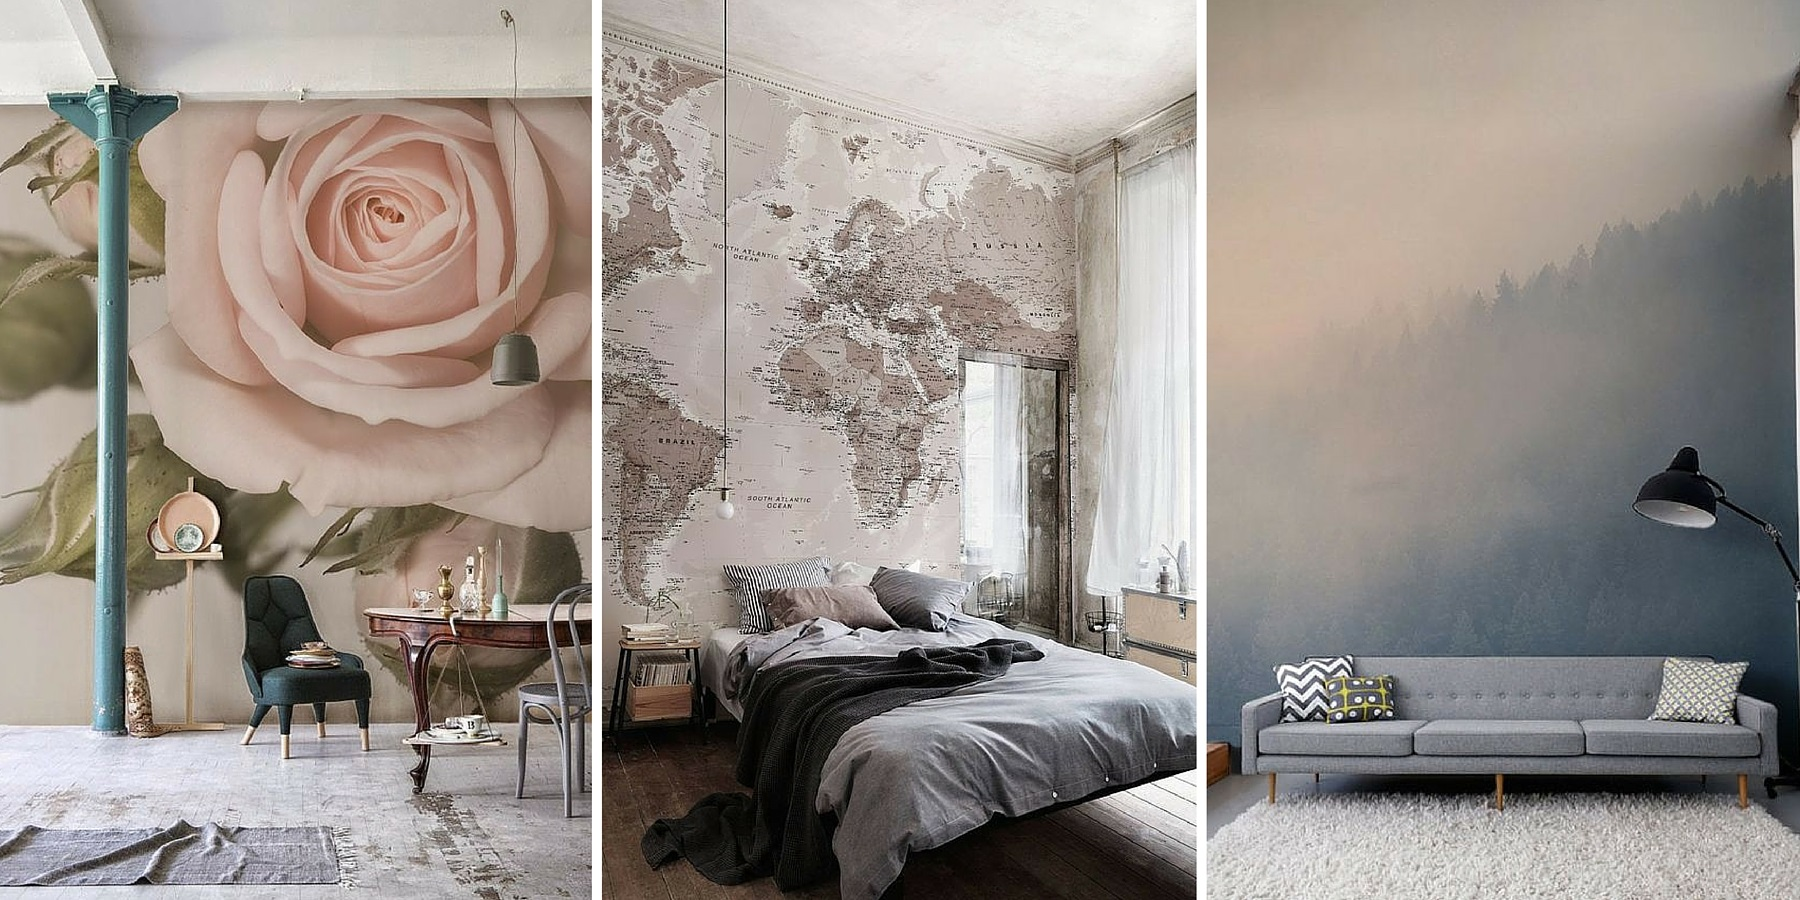 Burlanes Interiors - Wall Mural Inspiration from Burlanes Interiors